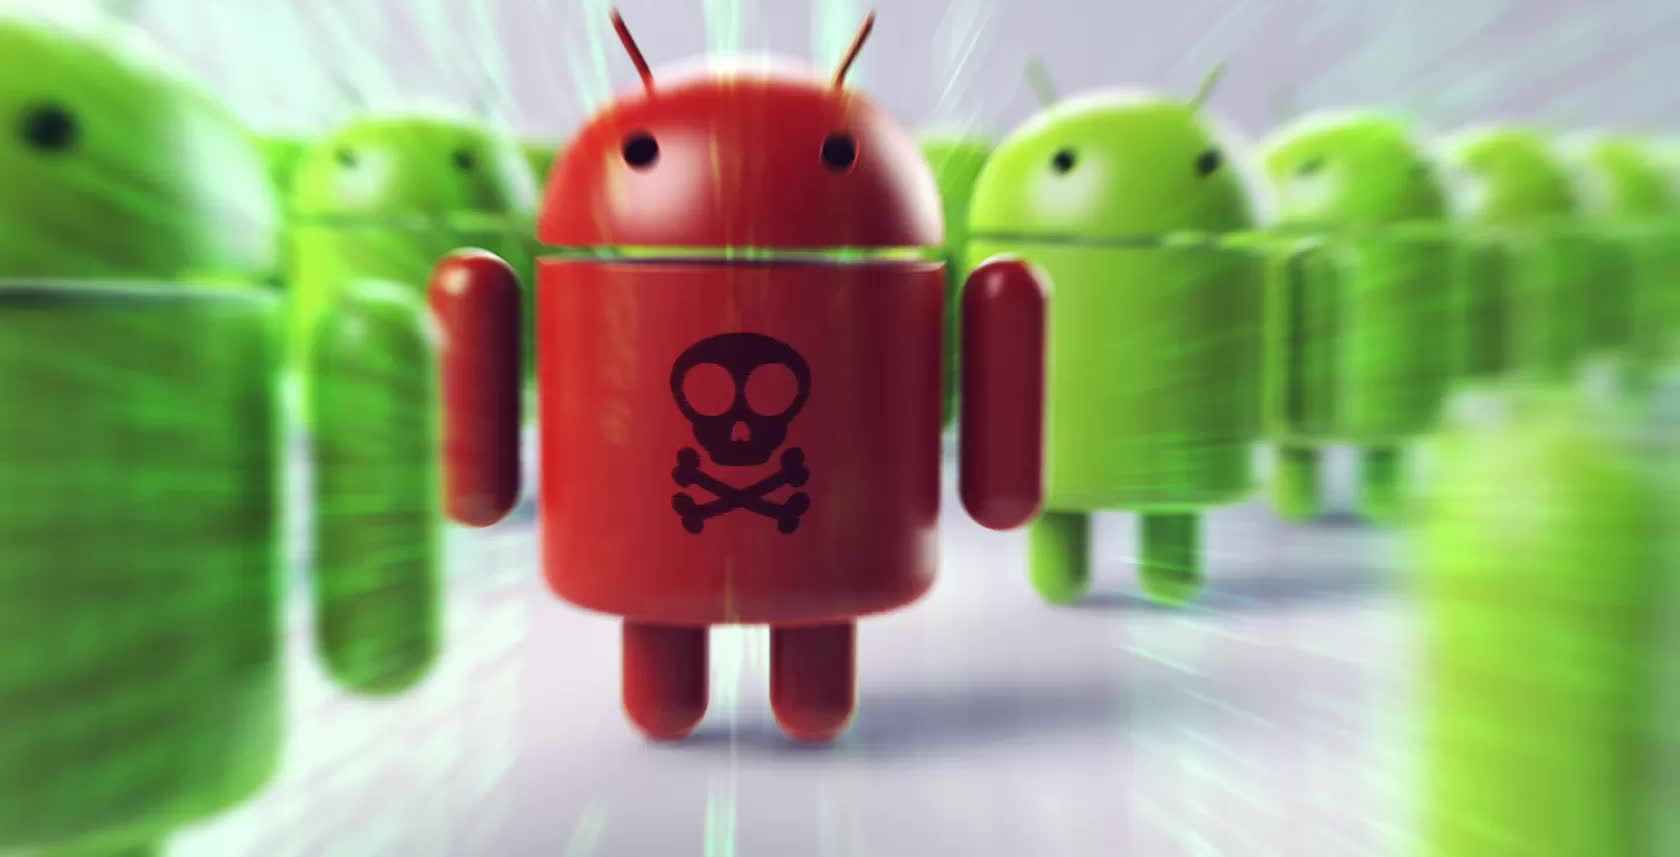 Beware of this newly discovered Android spyware that pretends to be a system update